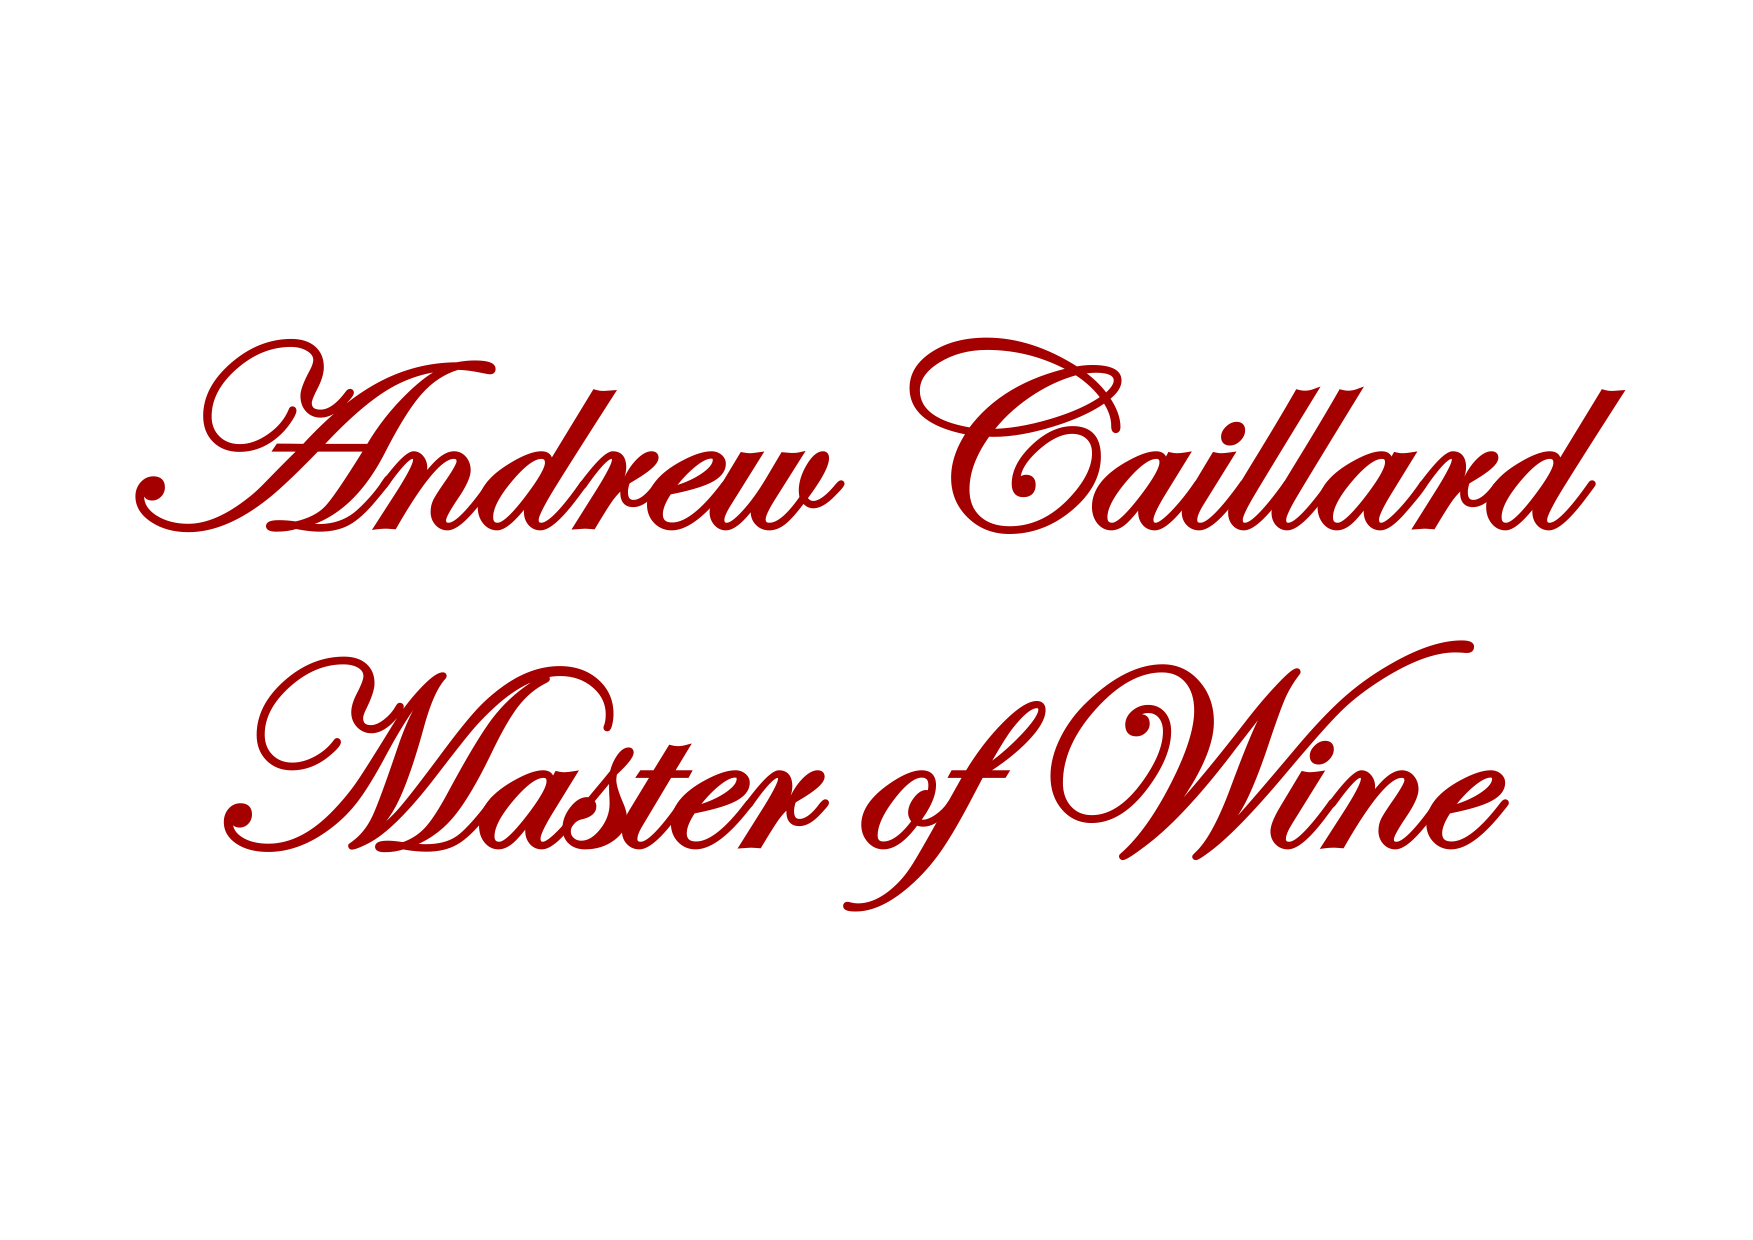 Andrew Caillard, Master of Wine